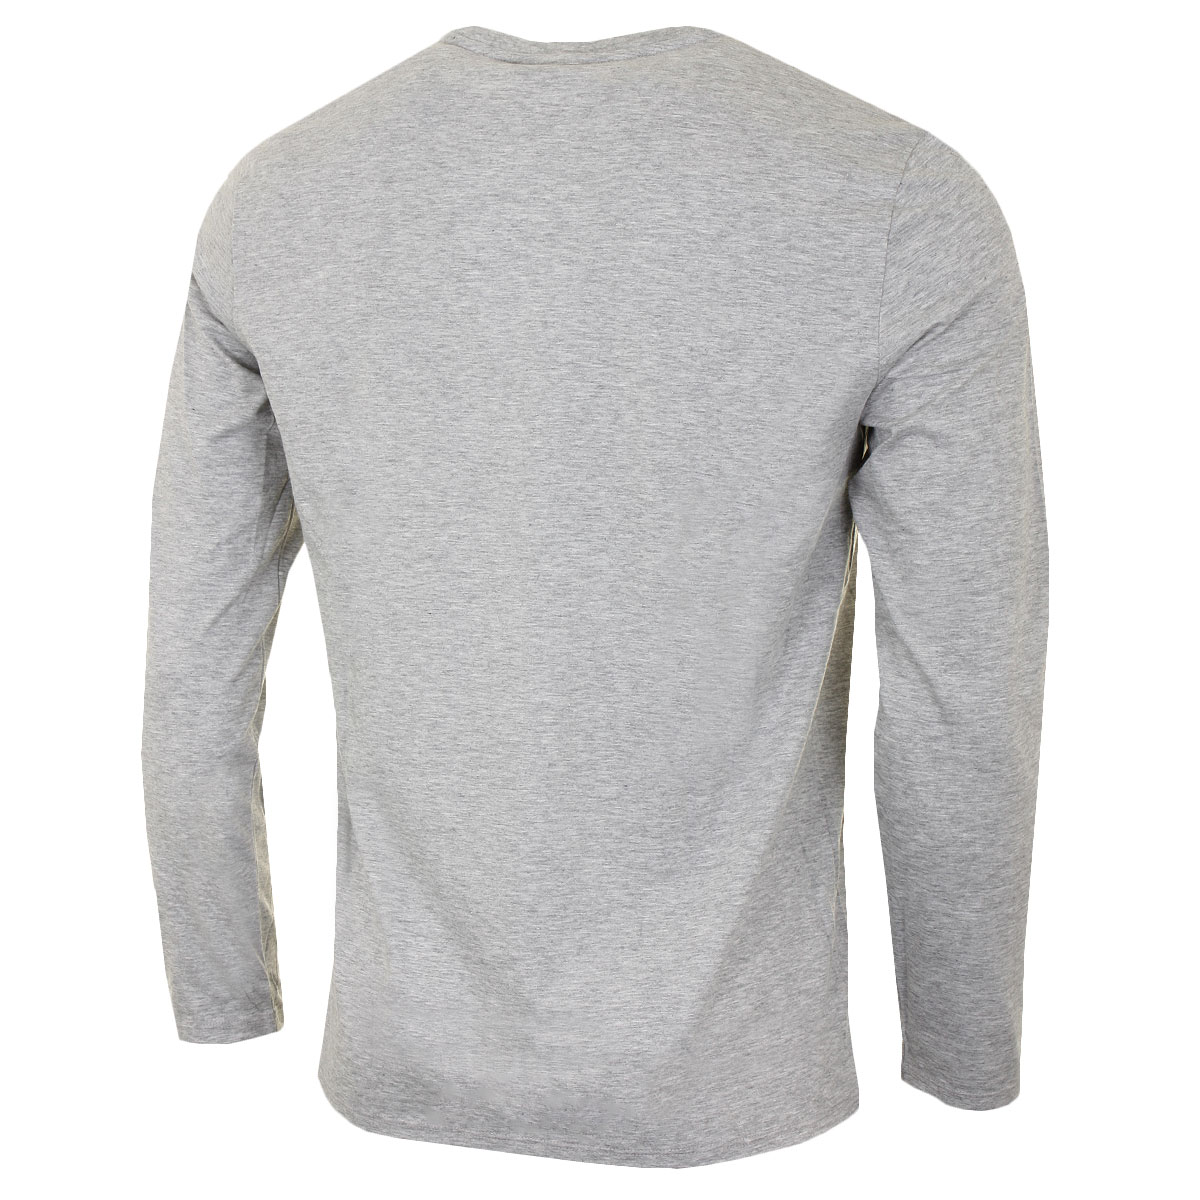 Lacoste-Mens-2019-LS-Crew-Neck-Cotton-T-Shirt-TH6712-Long-Sleeve-Tee-27-OFF-RRP thumbnail 11